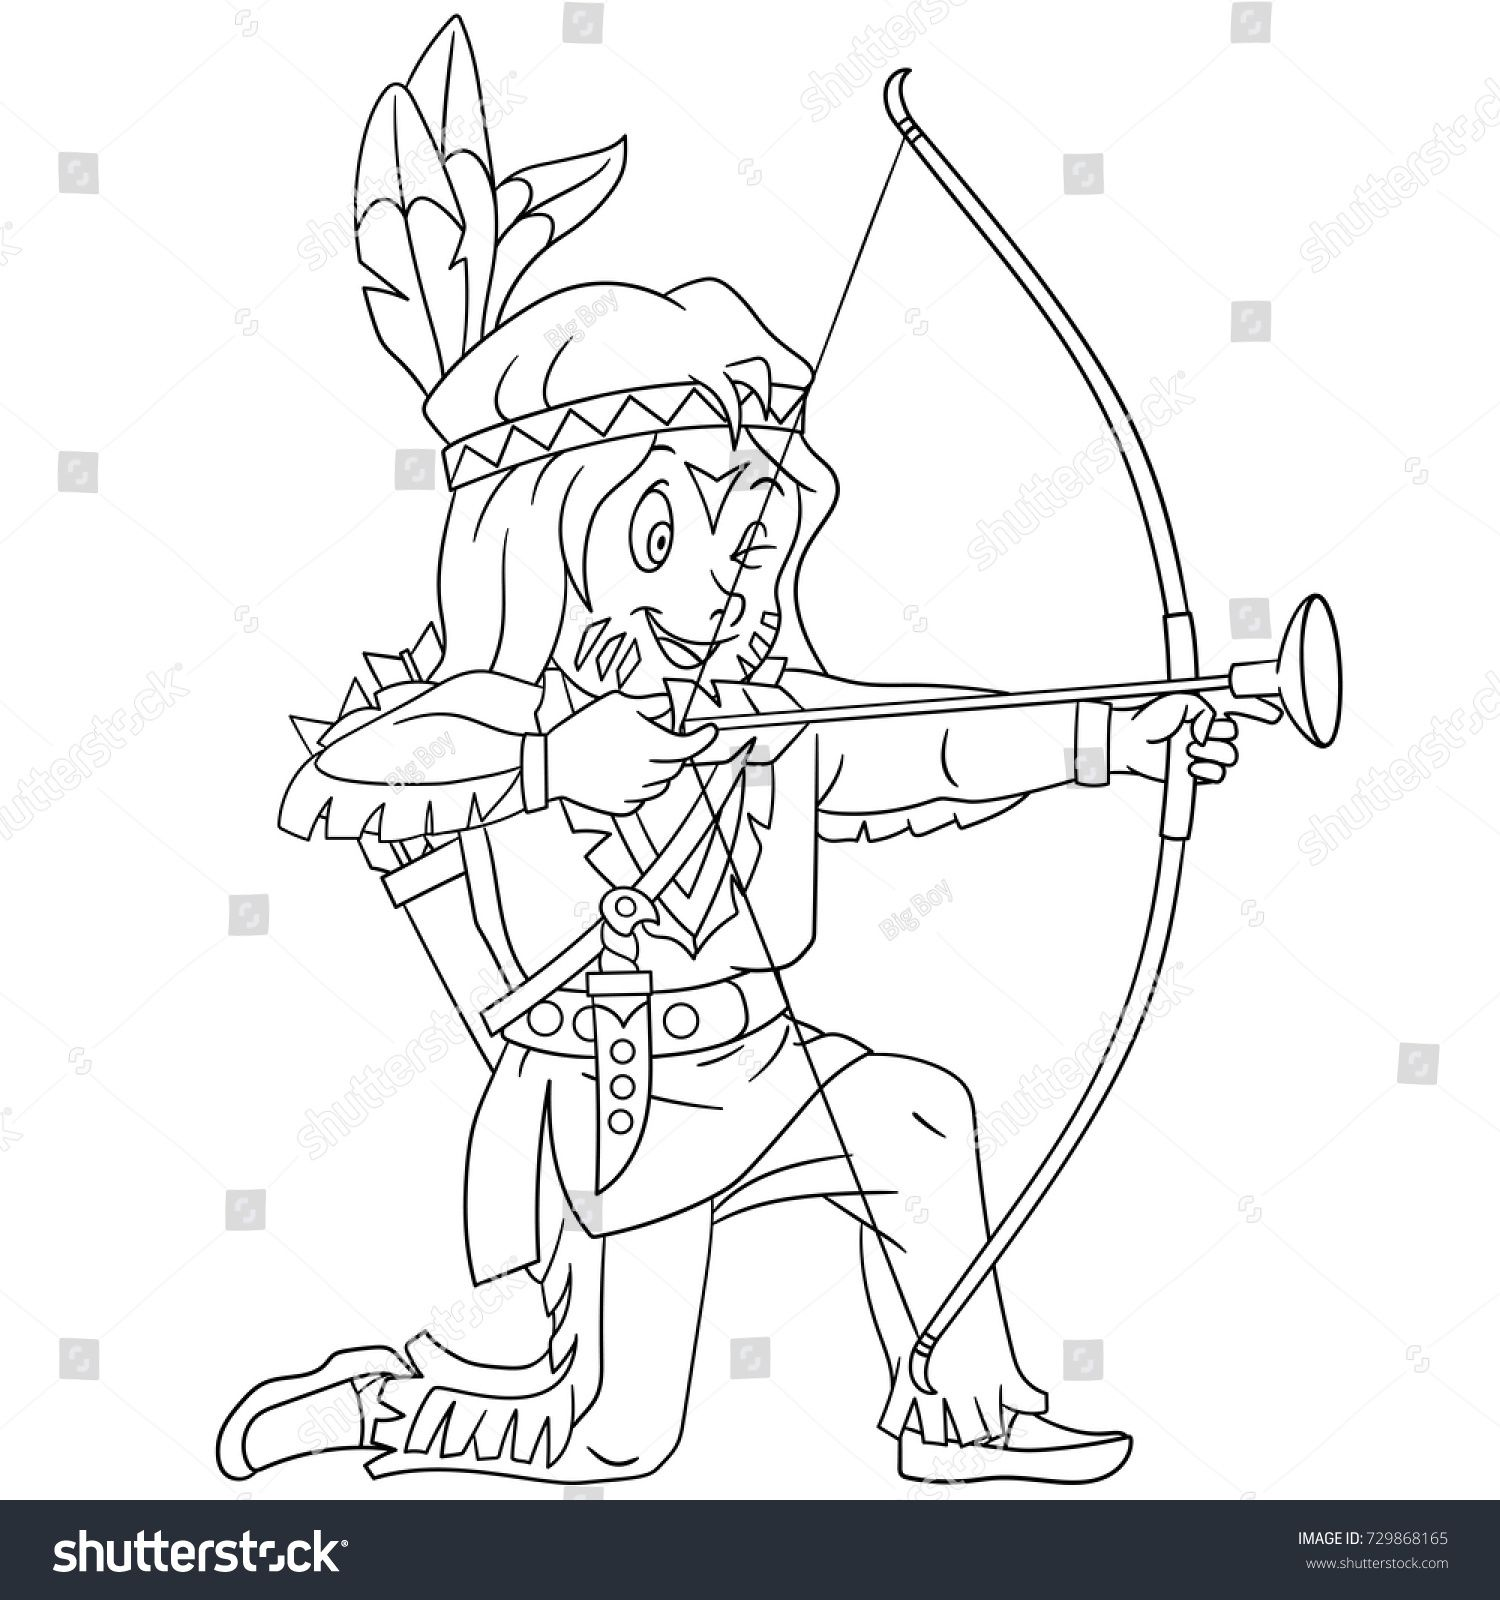 Coloring page of cartoon native american indian boy with bow and ...